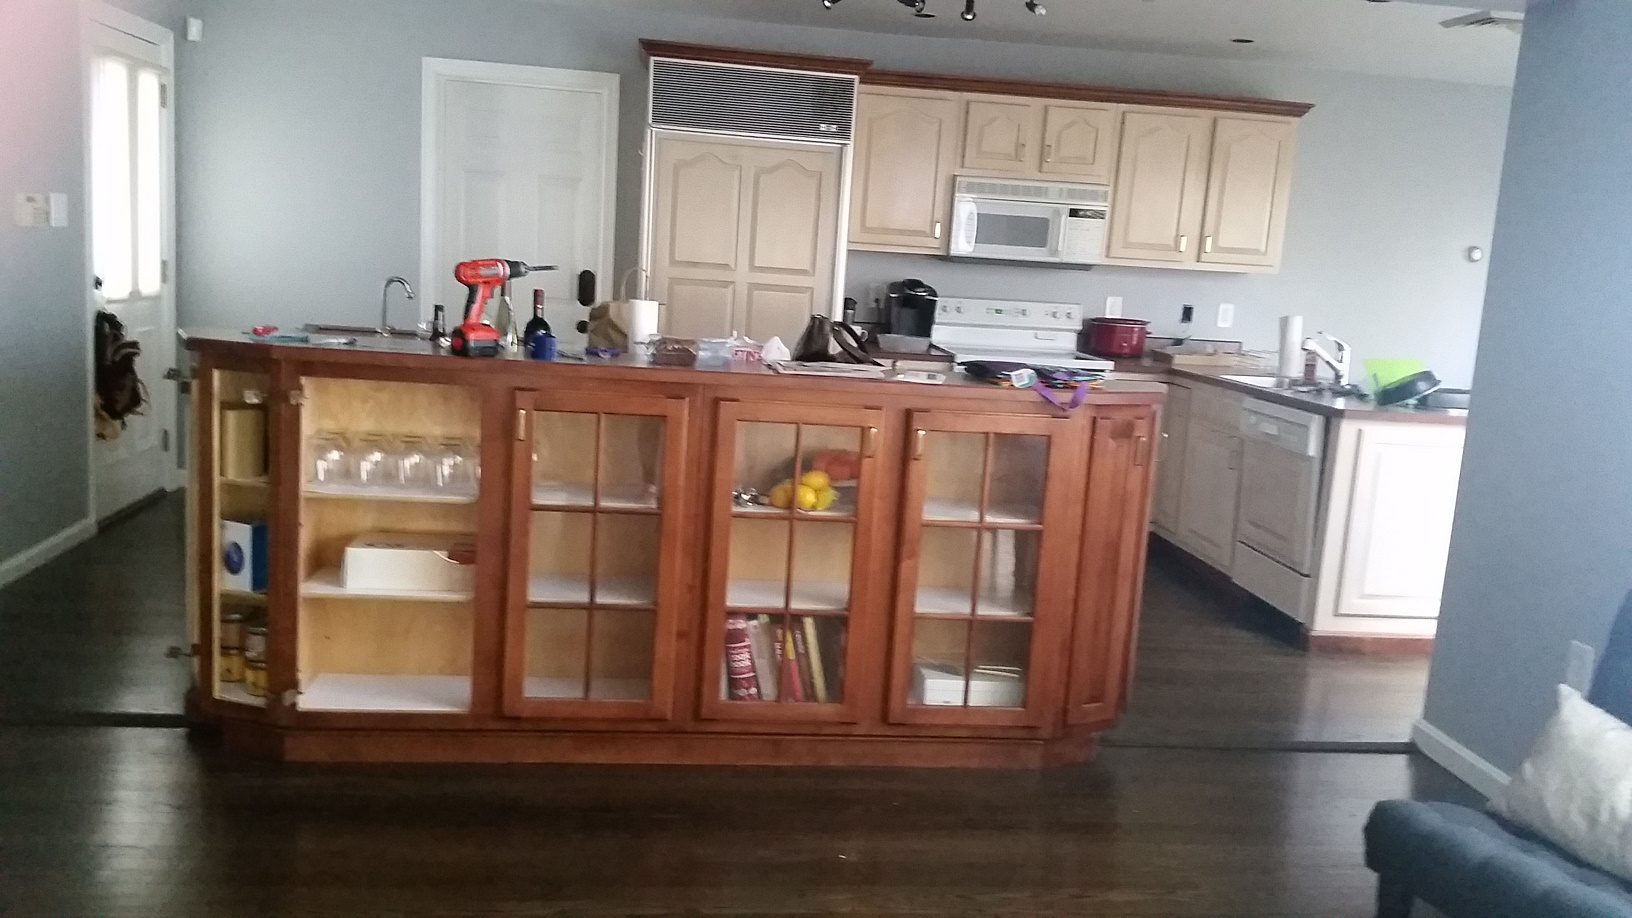 Here's a before picture of the kitchen. Nice, right?